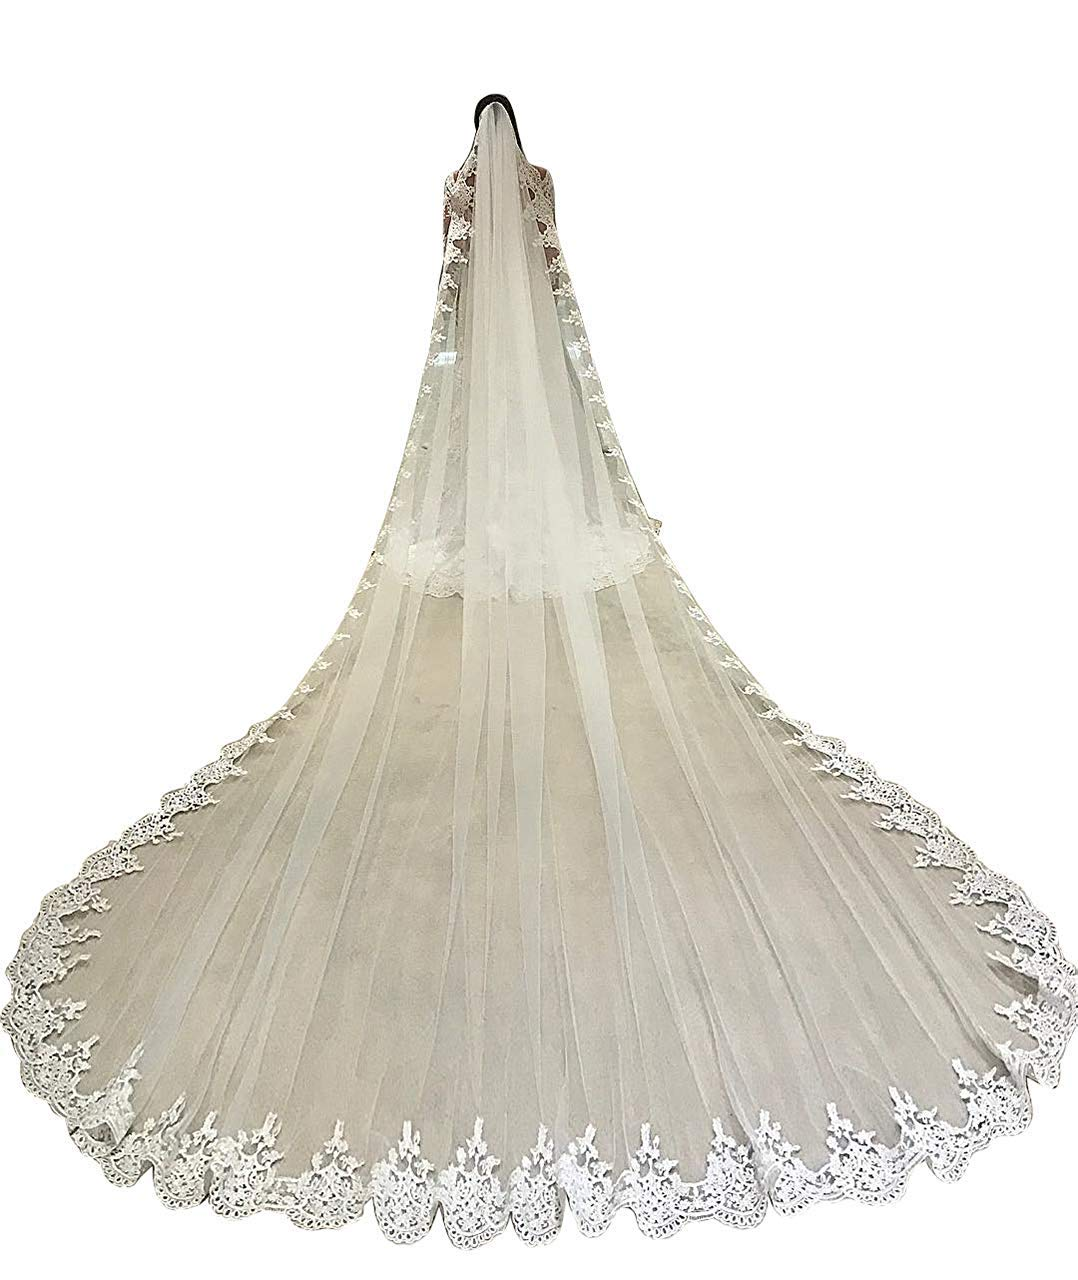 Fenghuavip Cathedral Wedding Veils for Bride 1 Tier Full Lace Edge with Comb by Fenghuavip